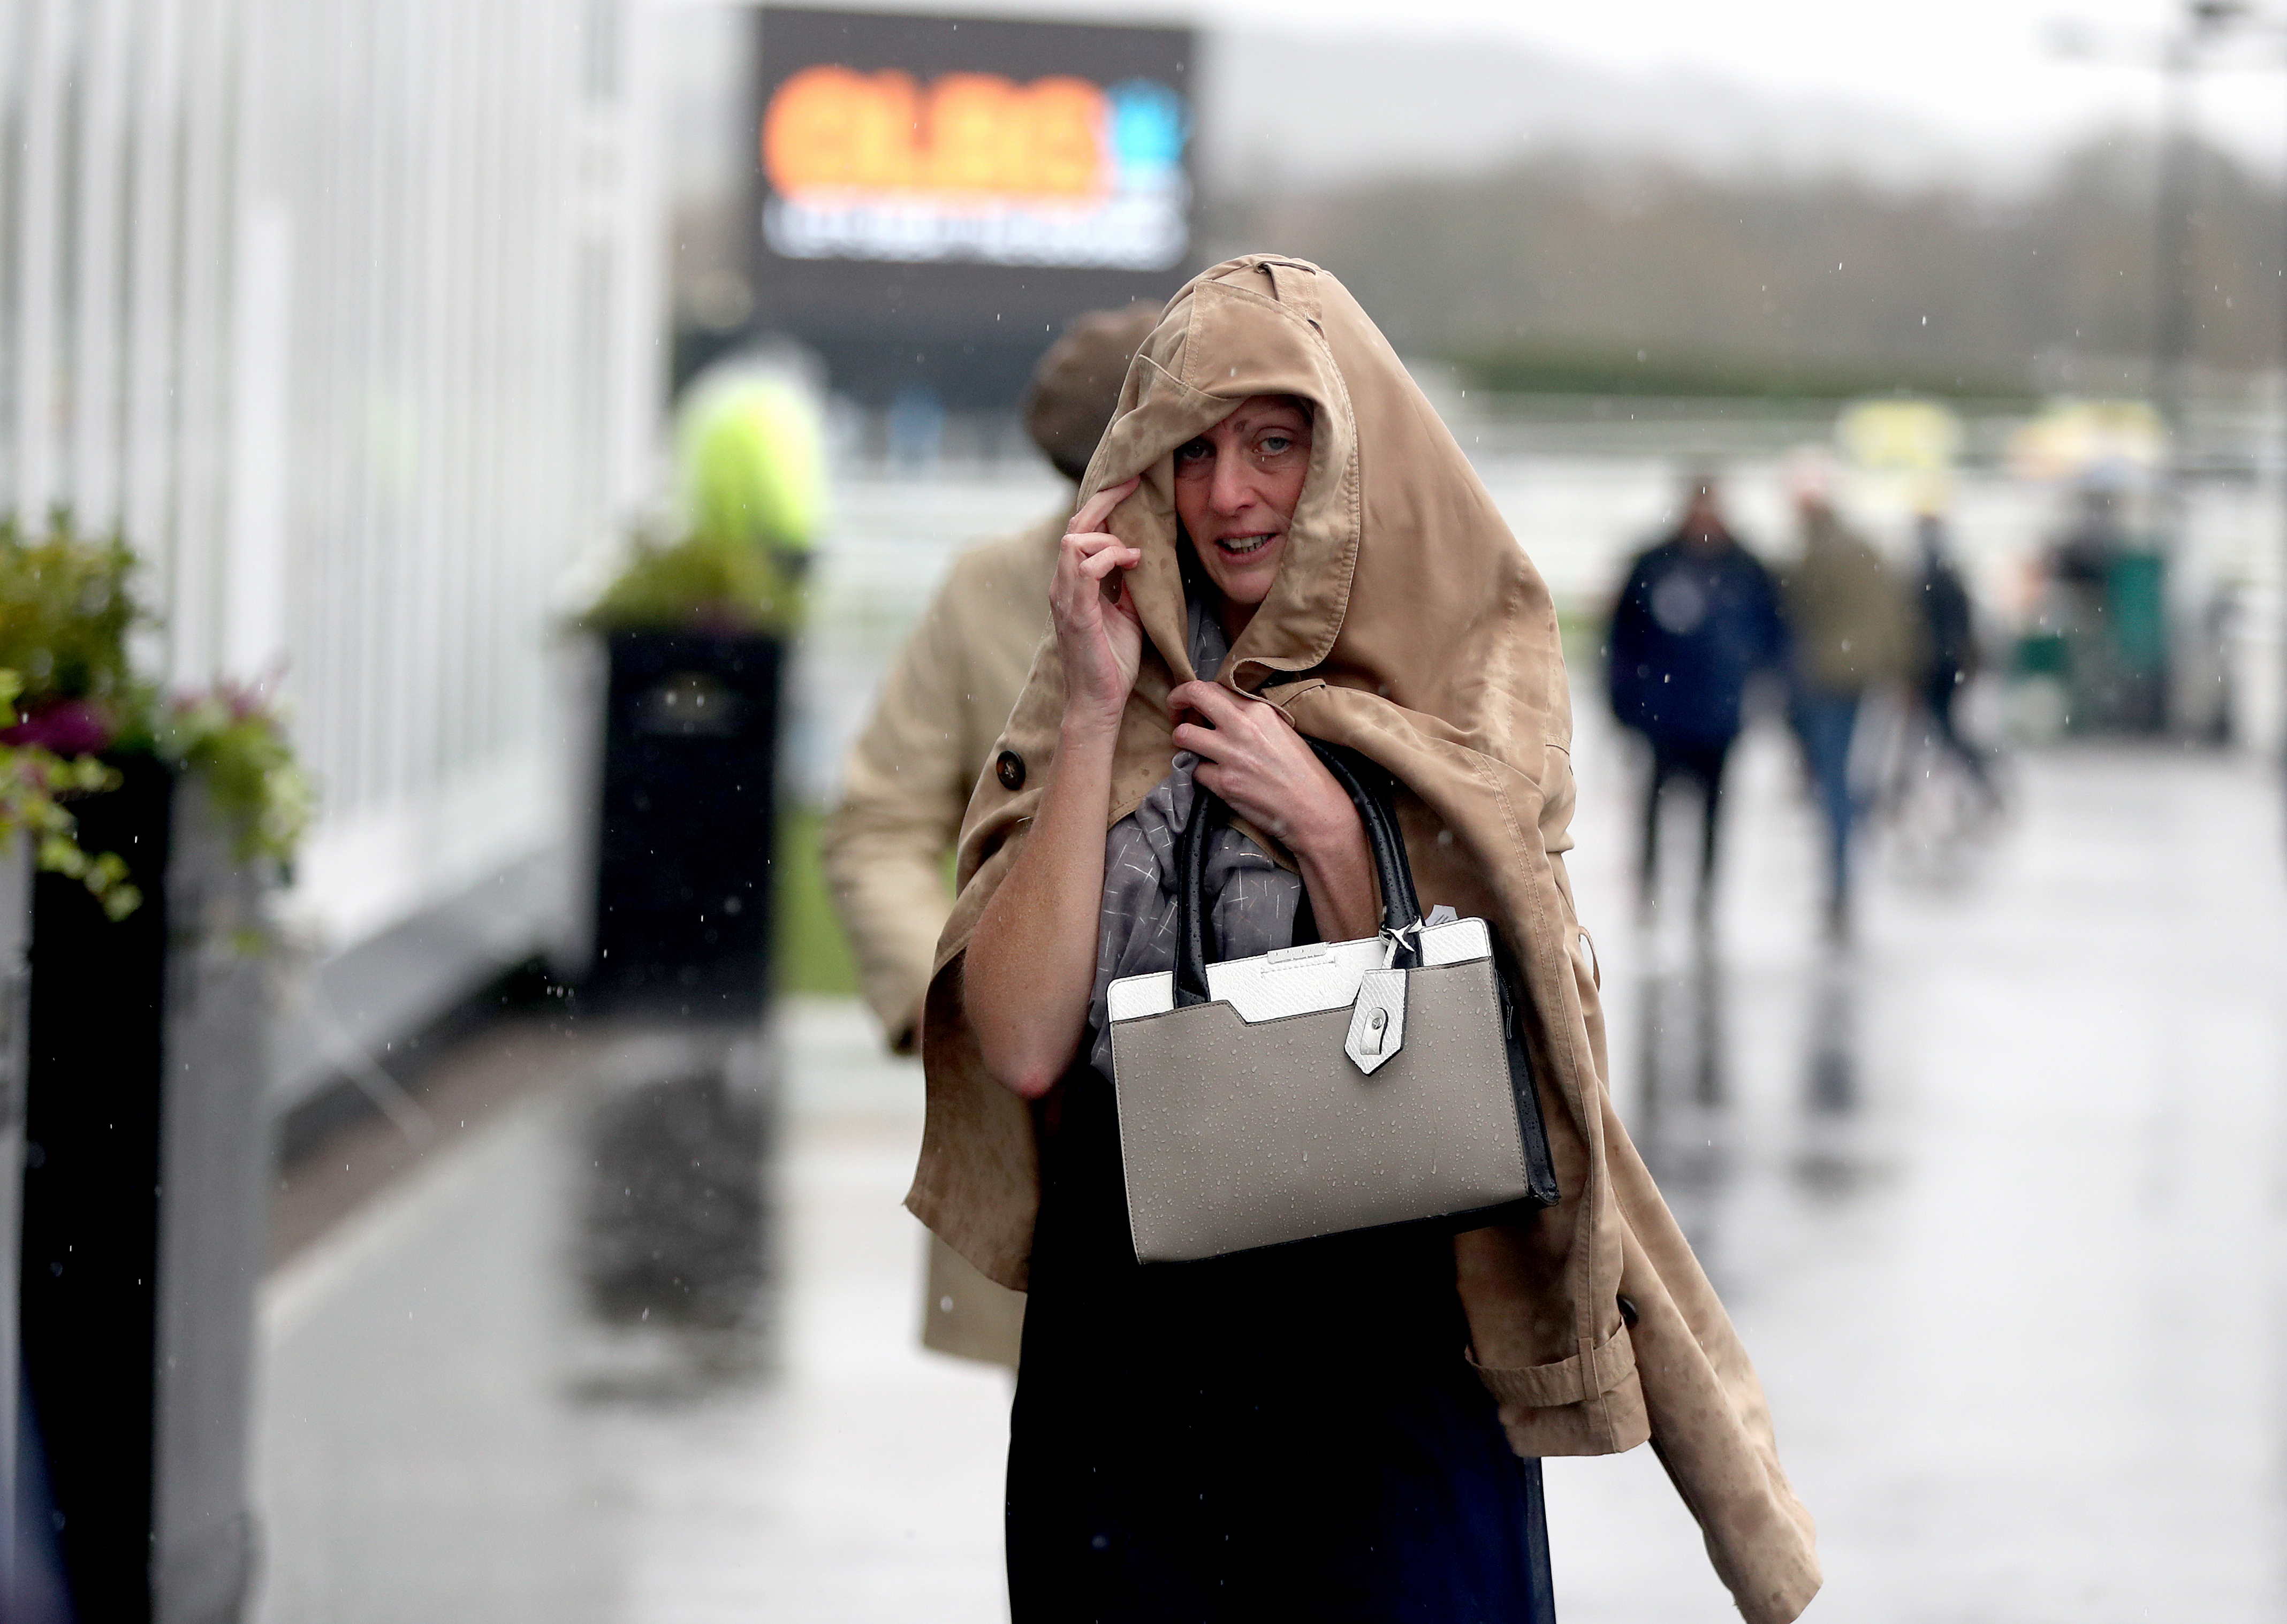 Rain, rain: It was a wet start to the Festival for everyone